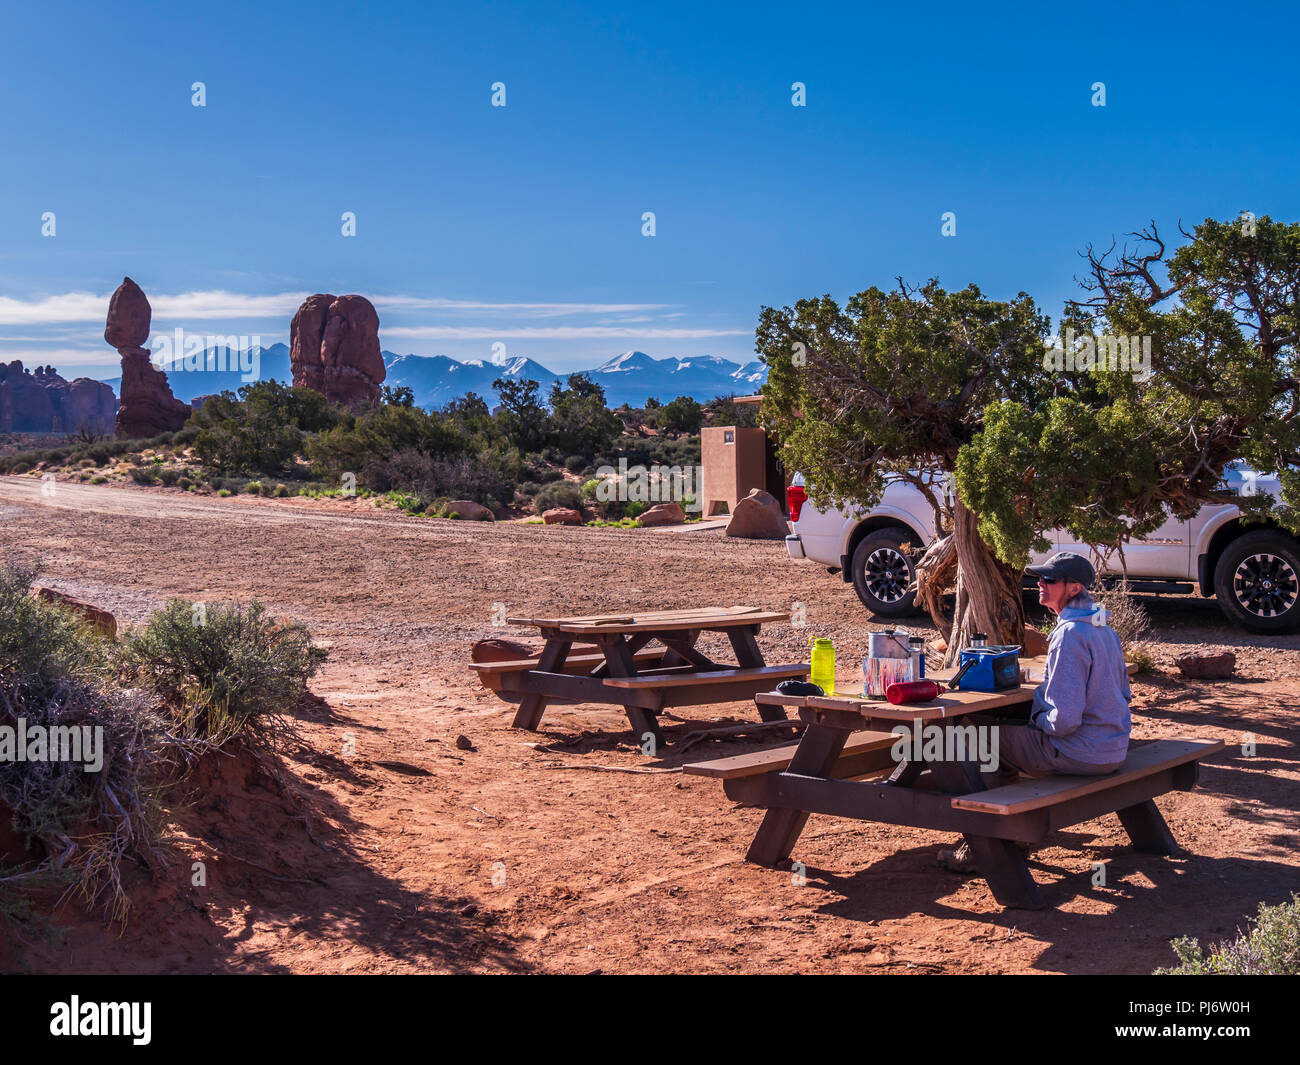 Visitor at the picnic area off the Willow Springs Road, Arches National Park, Moab, Utah. - Stock Image